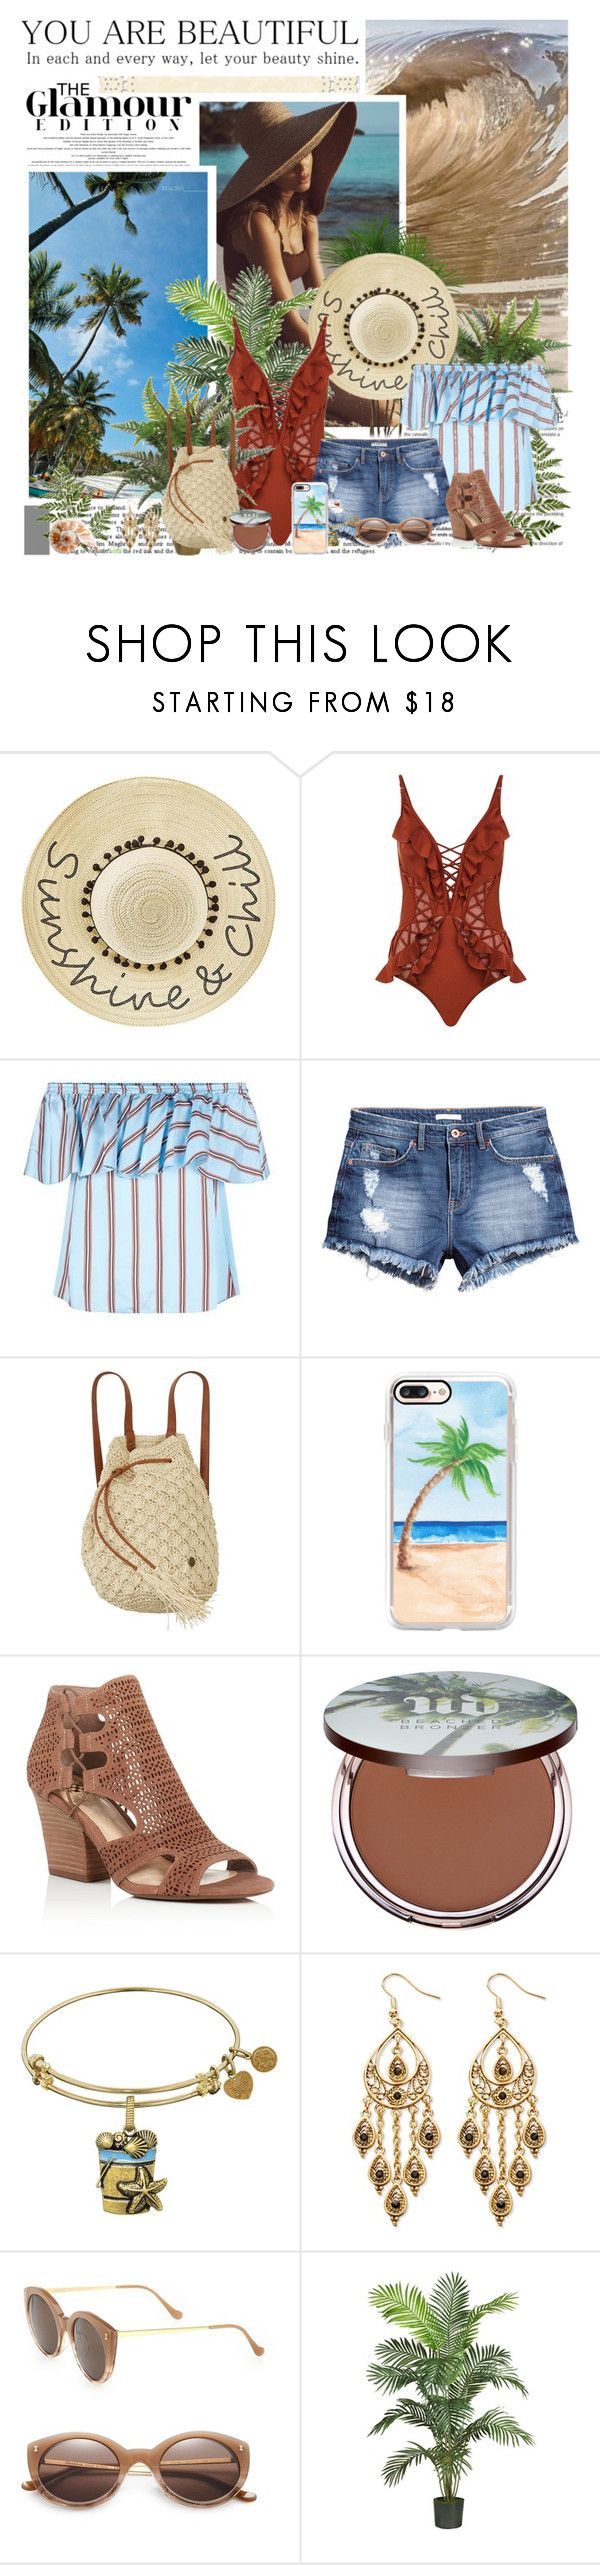 """""""Cozumel, Mexico"""" by seafreak83 ❤ liked on Polyvore featuring Betsey Johnson, Zimmermann, Pinko, H&M, Billabong, Casetify, Vince Camuto, Urban Decay, Palm Beach Jewelry and Illesteva"""